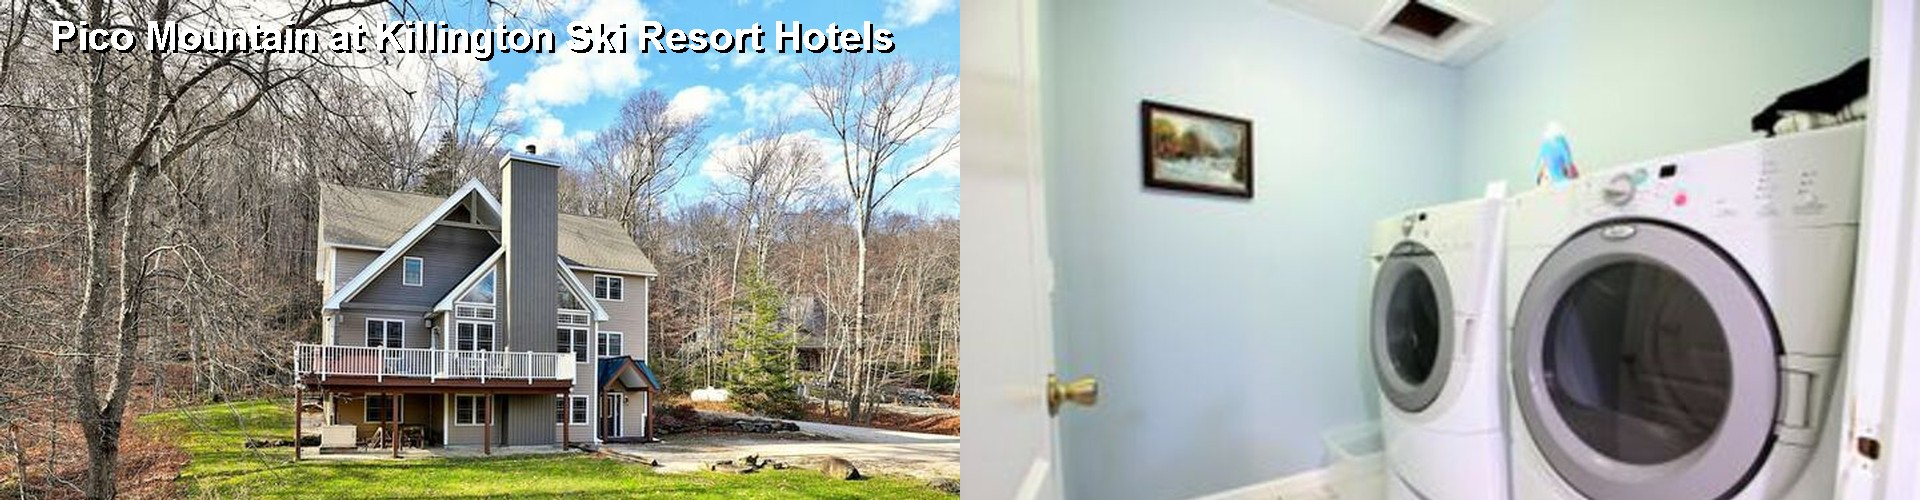 5 Best Hotels near Pico Mountain at Killington Ski Resort